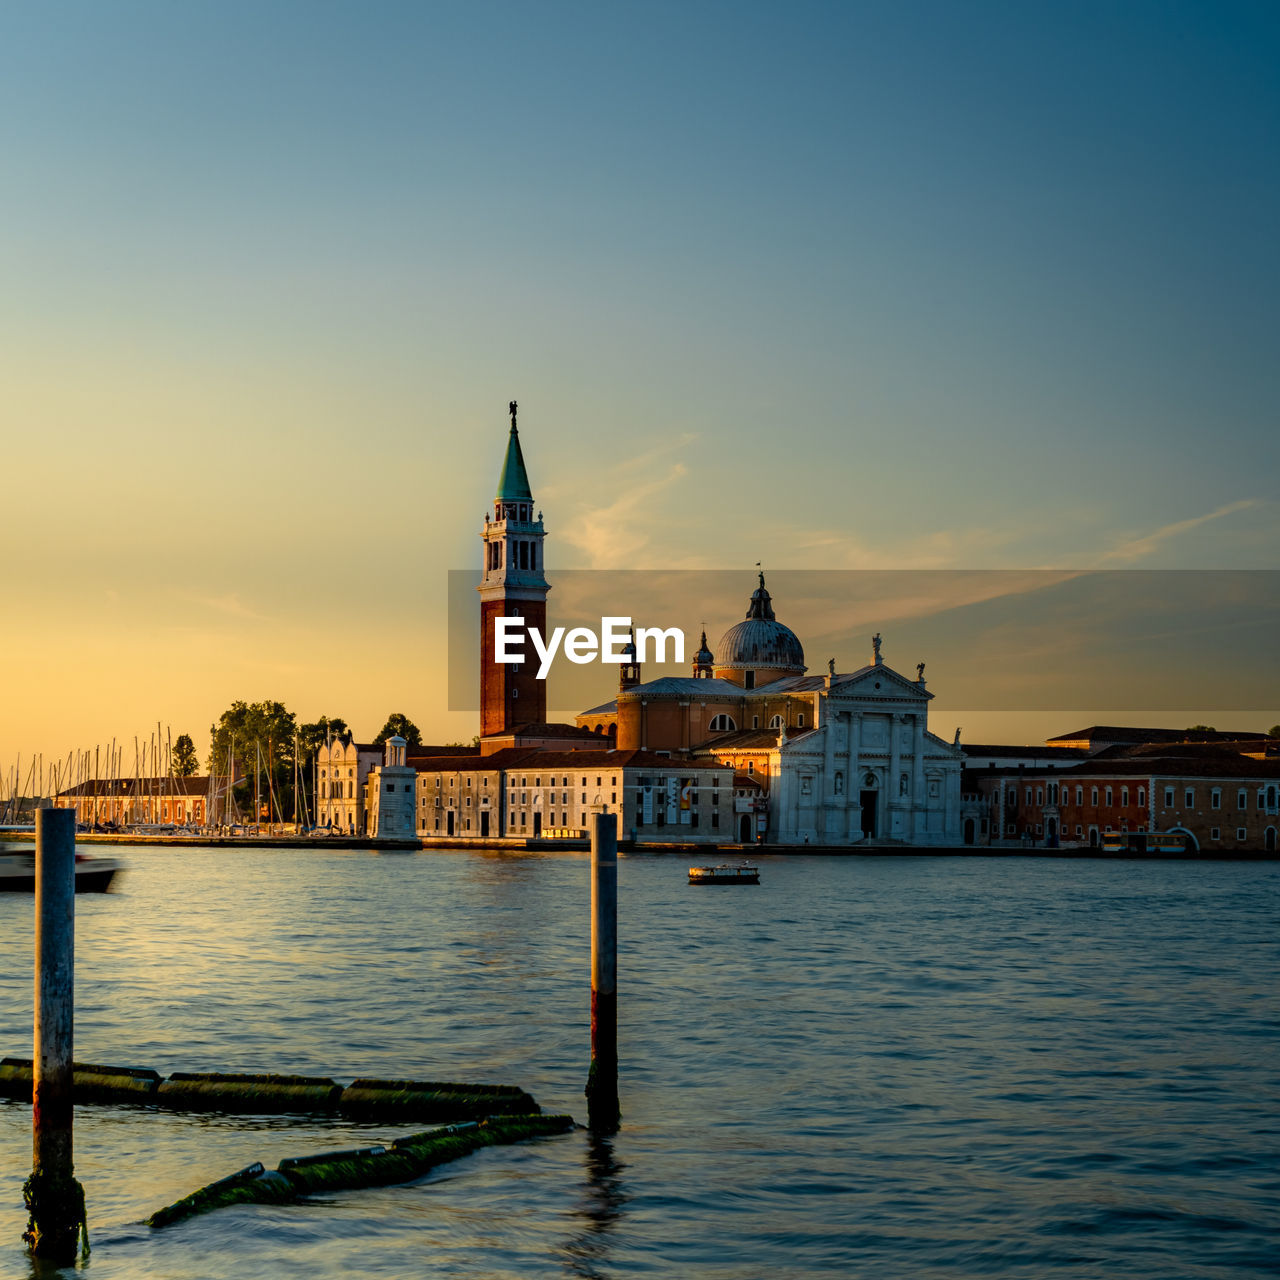 City of venice at sunset with basilica across canal